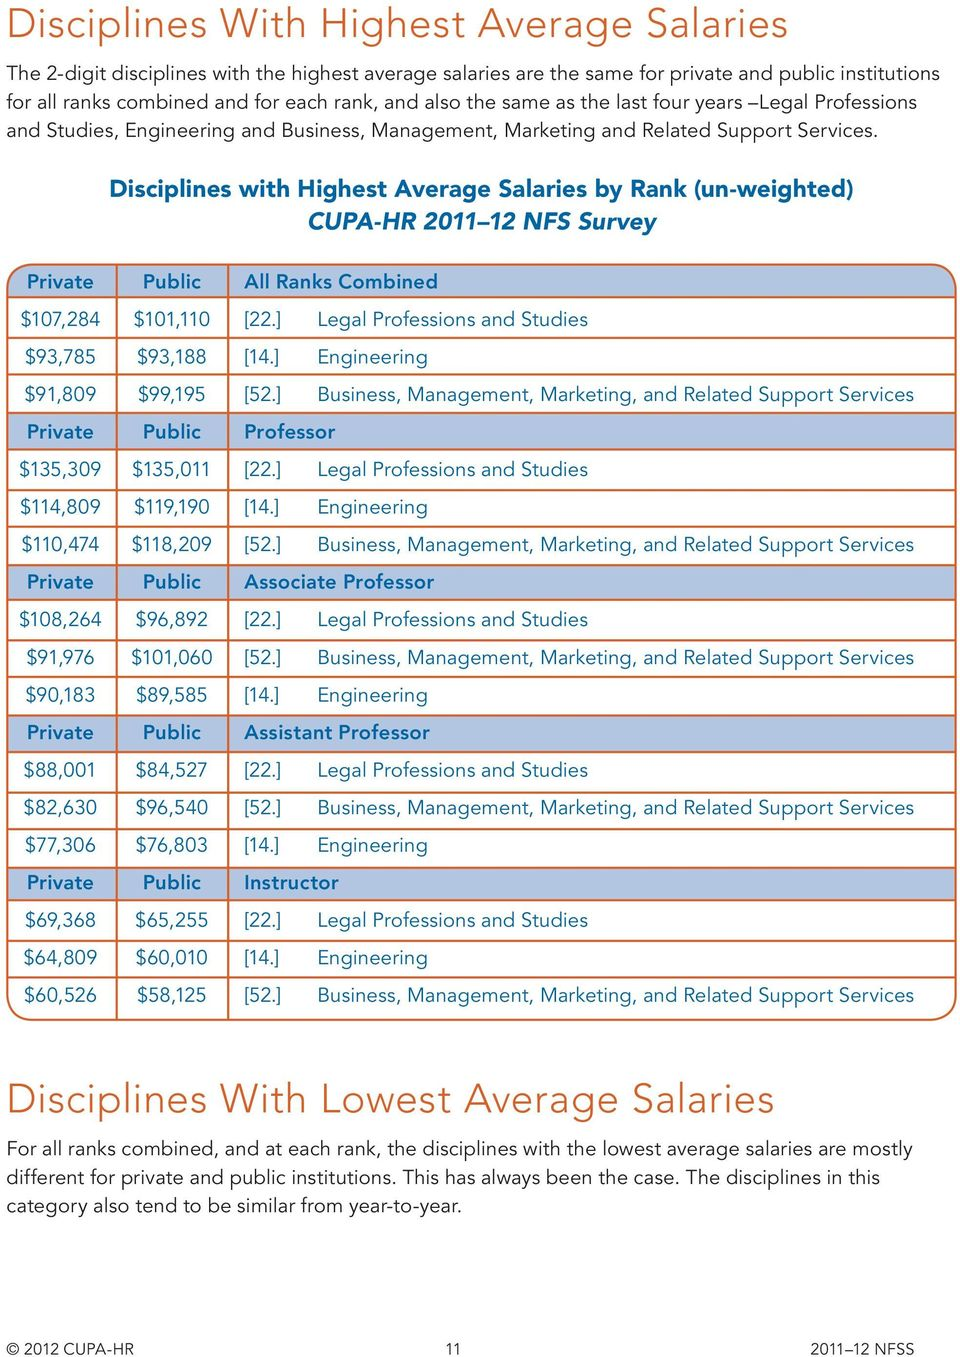 Disciplines with Highest Average Salaries by Rank (un-weighted) CUPA-HR 2011 12 NFS Survey $107,284 $93,785 $91,809 $135,309 $114,809 $110,474 $108,264 $91,976 $90,183 $88,001 $82,630 $77,306 $69,368